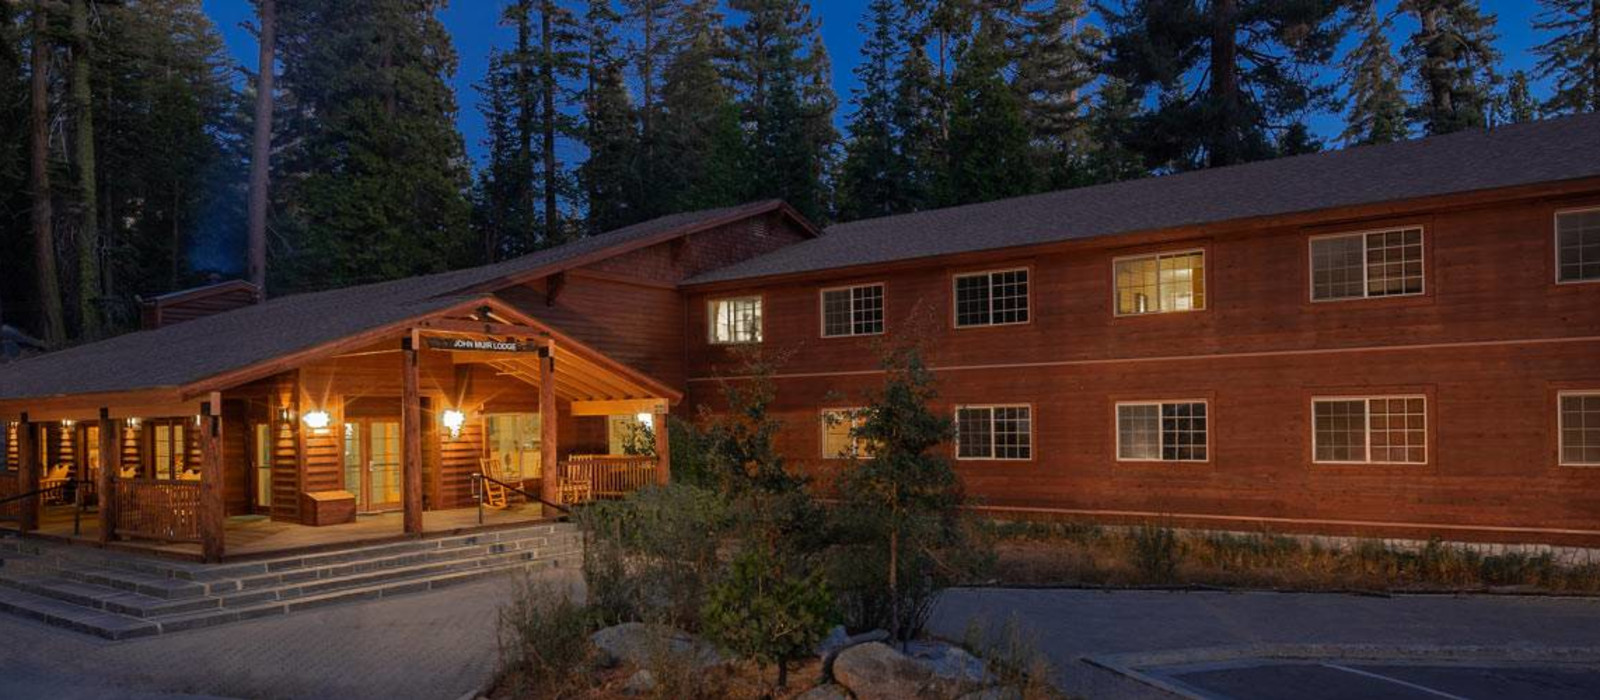 Hotel John Muir Lodge USA